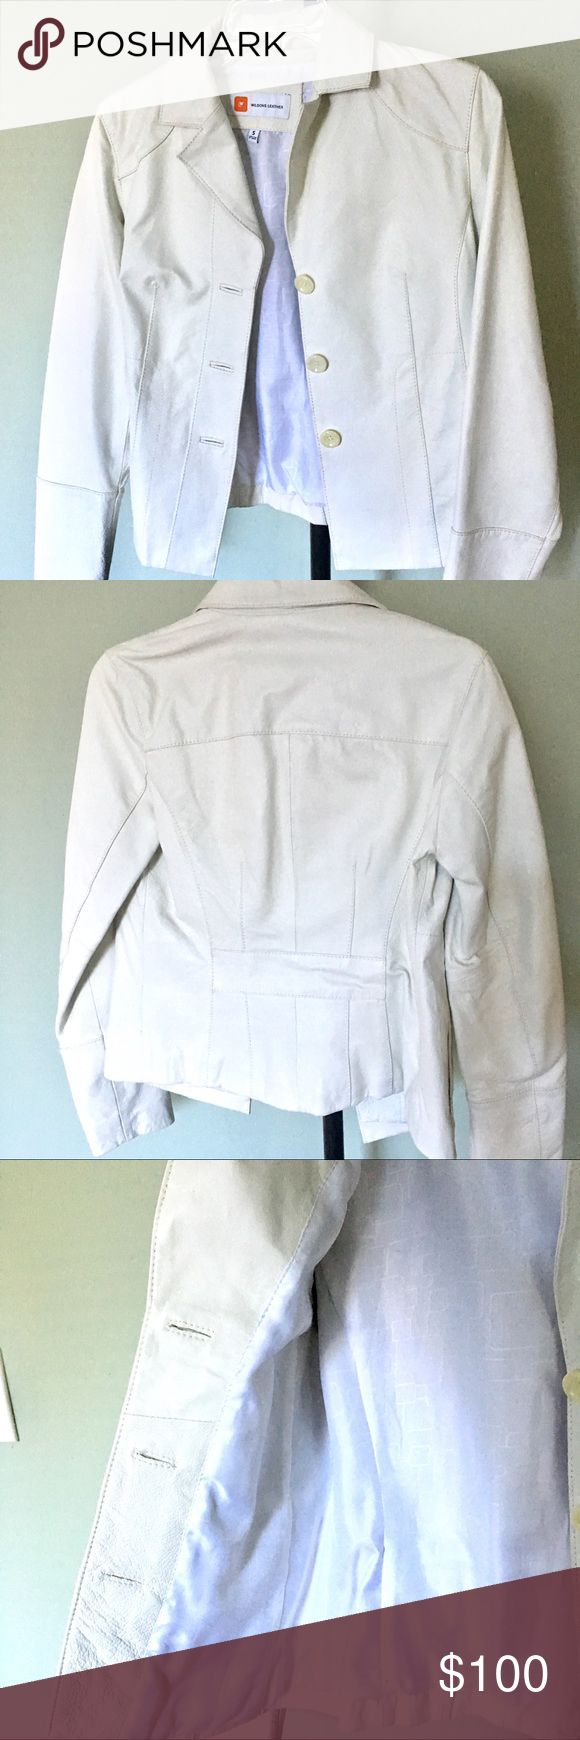 WILSON REAL LEATHER White Jacket fully lined SMALL A great and elegant REAL LEATHER jacket in WINTER WHITE. Size SMALL. Princess seams for a flattering fit. Very nicely structured Jacket. Hip length . Fully Lined and with 2 hidden pockets on the sides . One on each side. Brand New without tags condition and ready to ship. Reasonable offers considered but no lowballing please. Bundle 2+ items for additional discounts and to pay just one shipping charge. No trades please. Wilsons Leather…